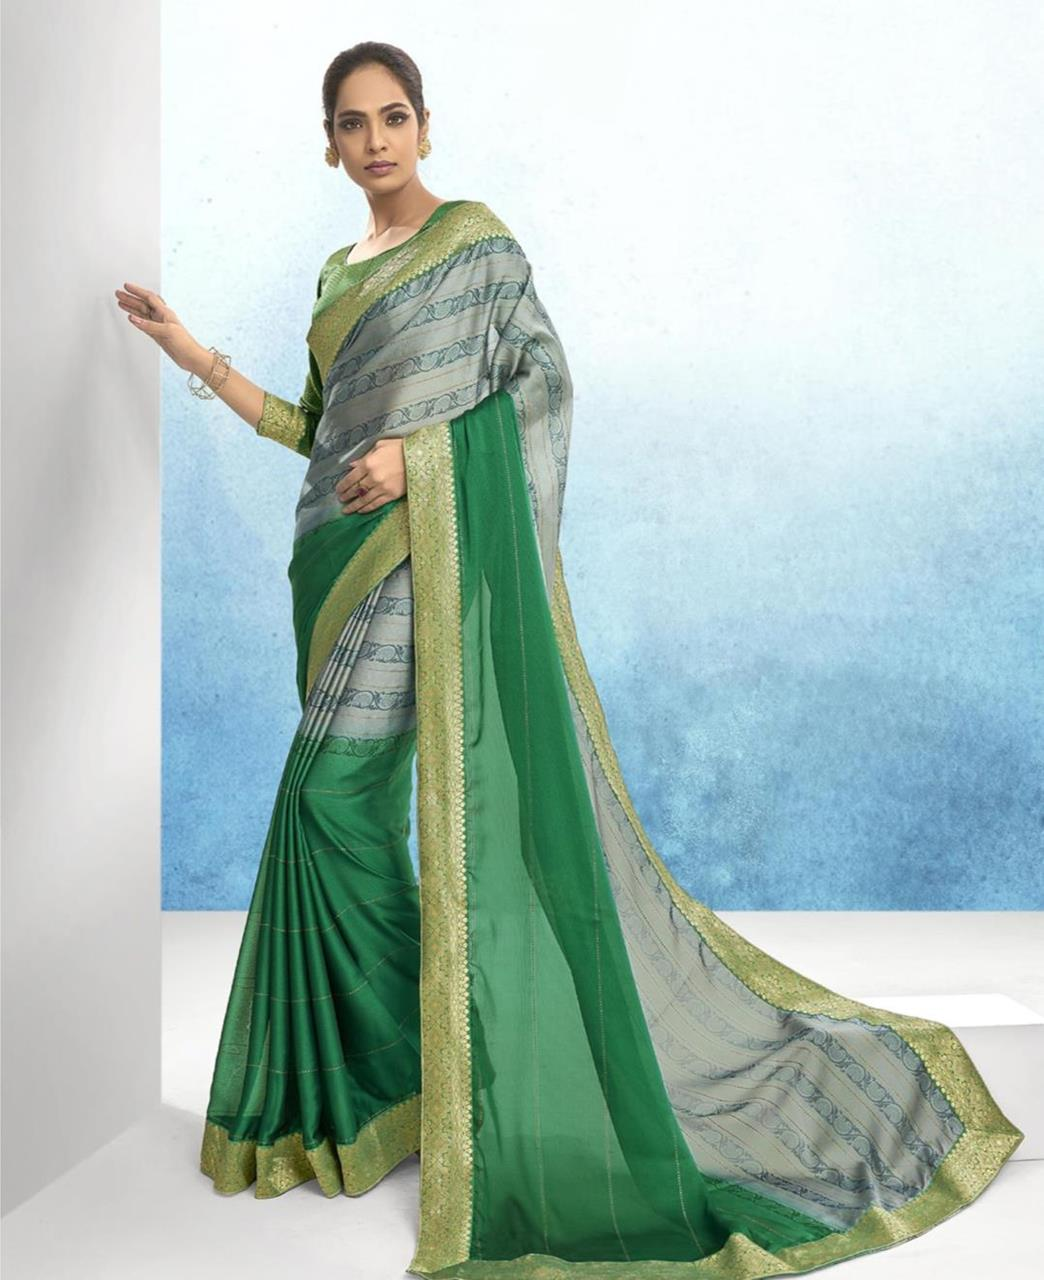 Lace Chiffon Saree in Light Green